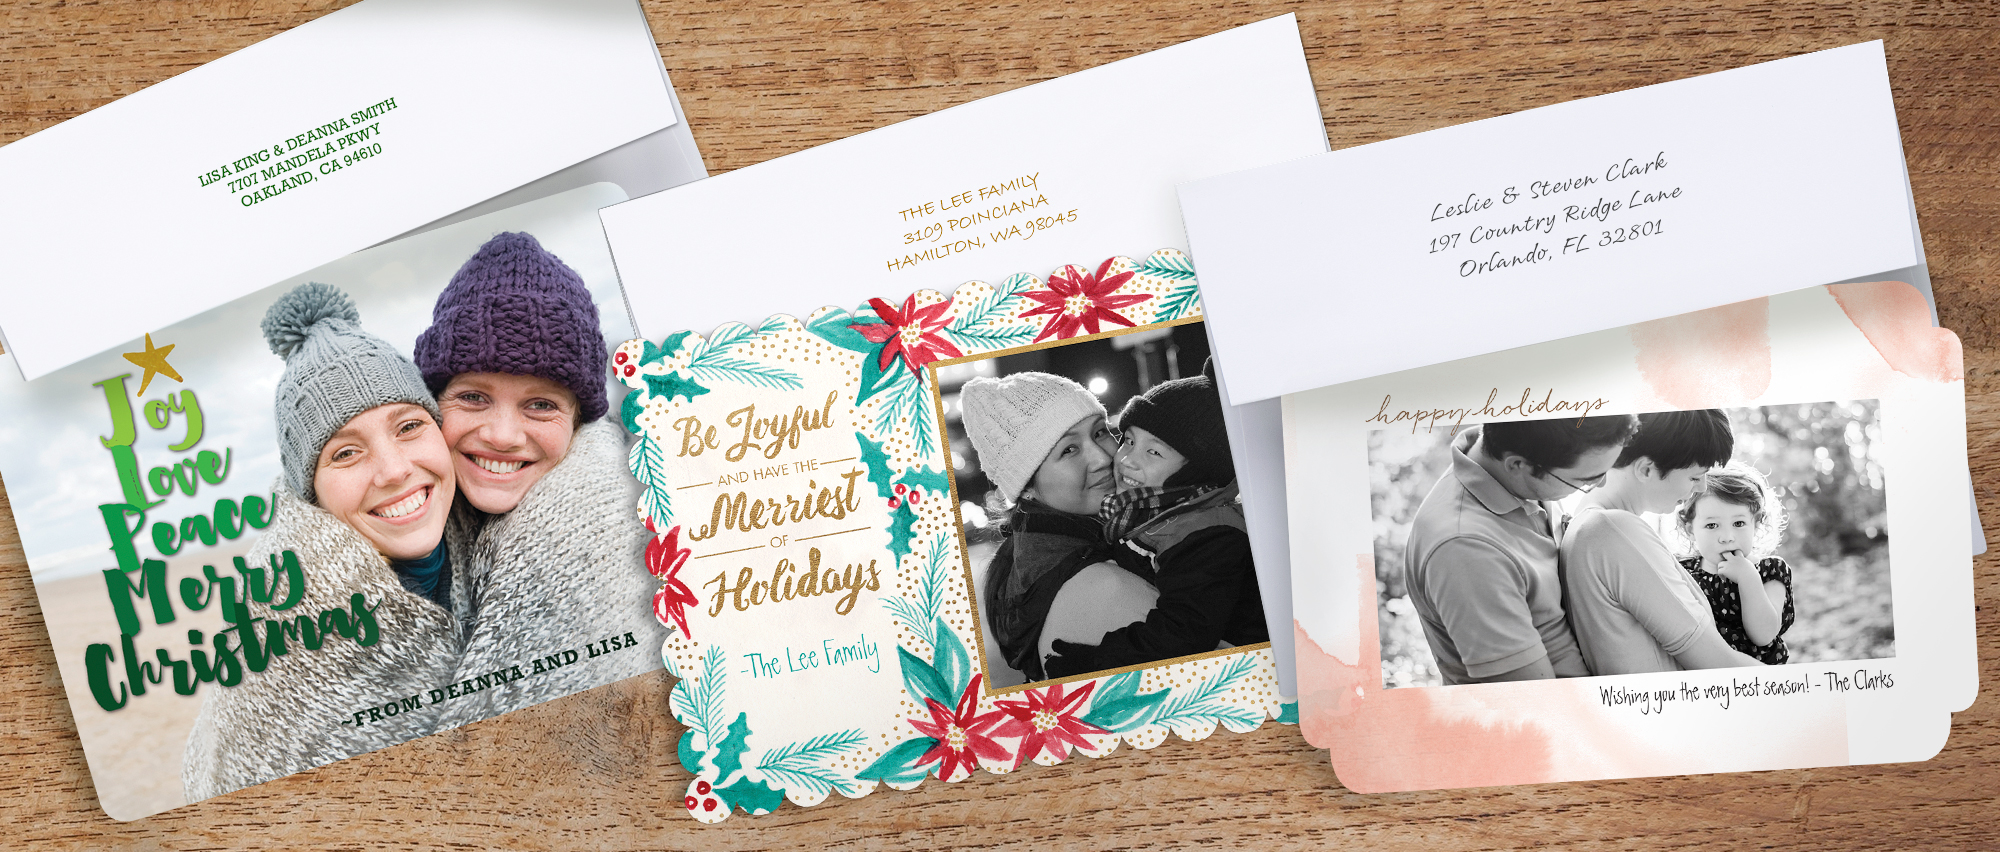 Shop for digital photo services at Snapfish. Buy personalised gifts like calendars, photo prints, mugs, photo books and posters and save with cashback and discount codes.